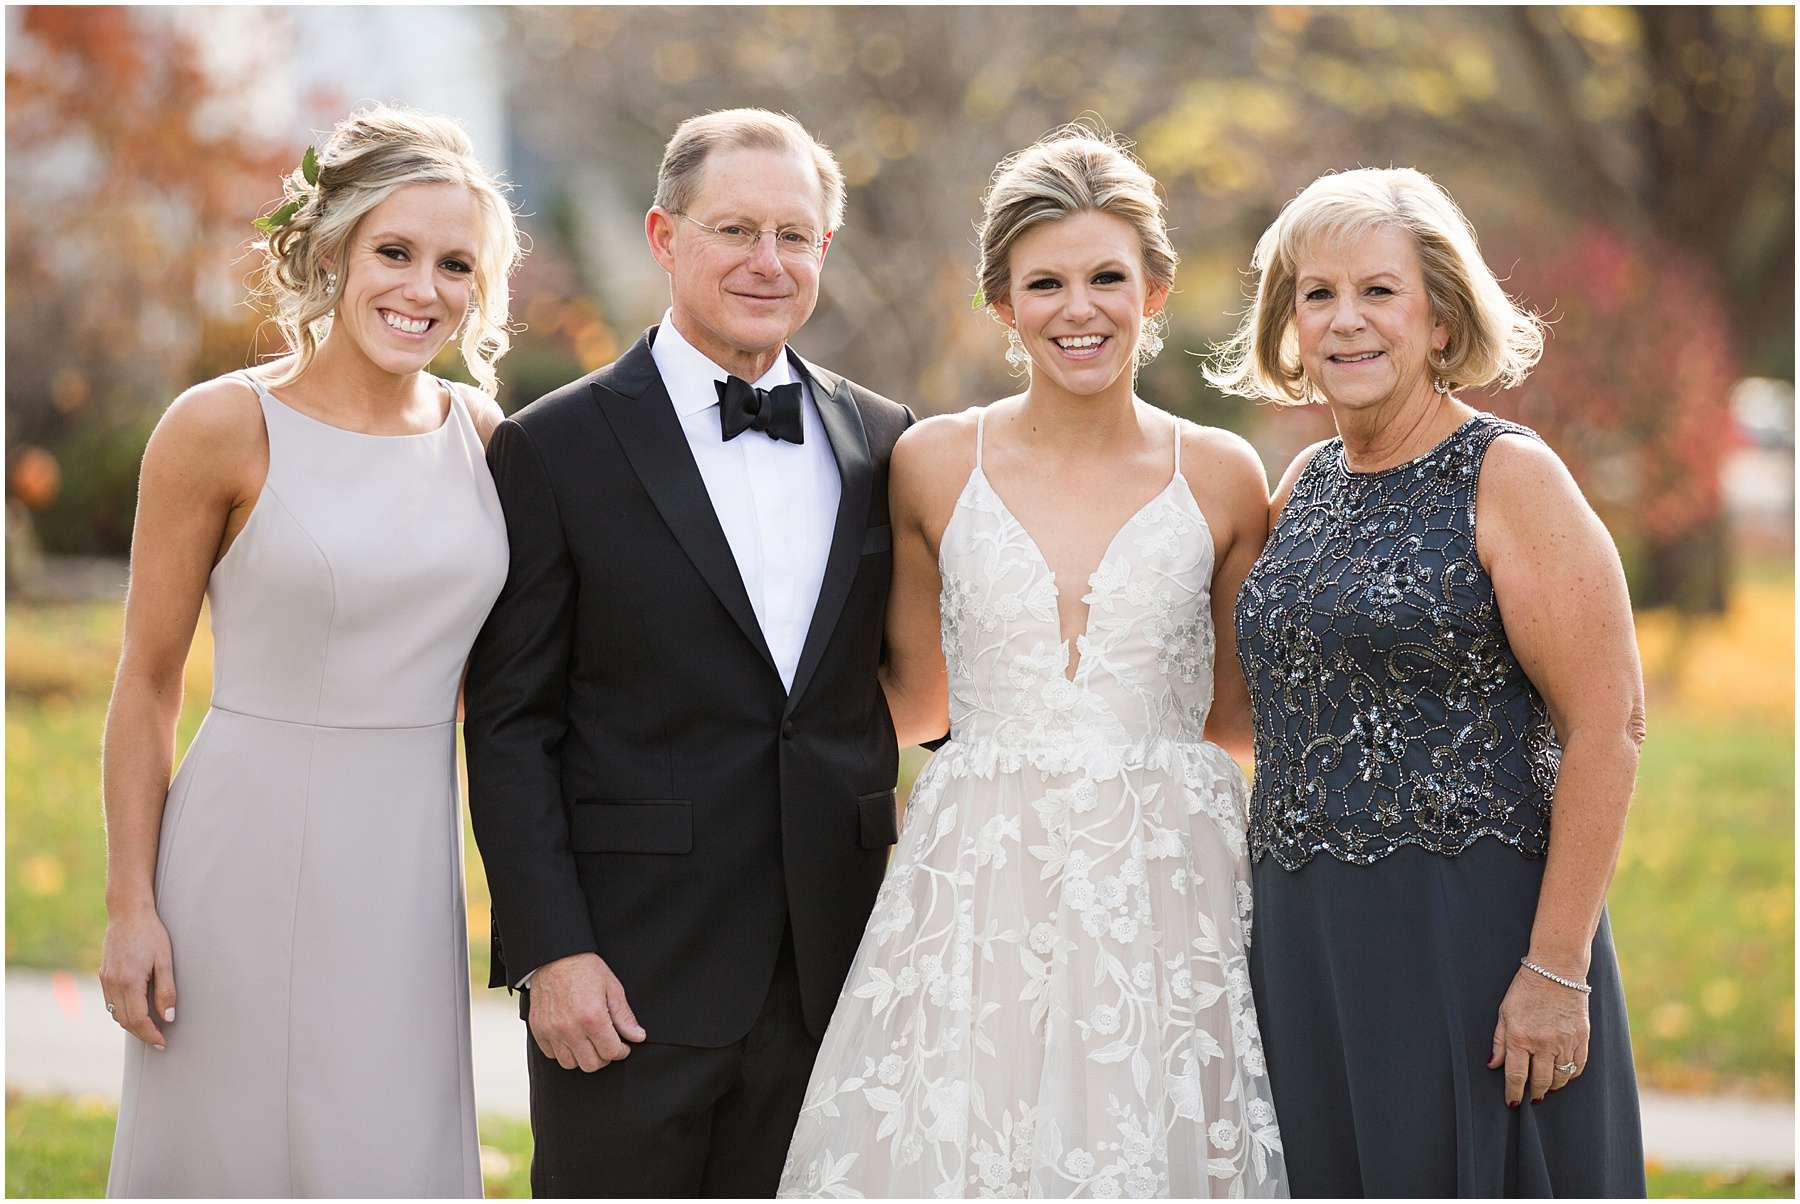 Wedding at the Ohio Statehouse | Columbus Ohio Weddings 48